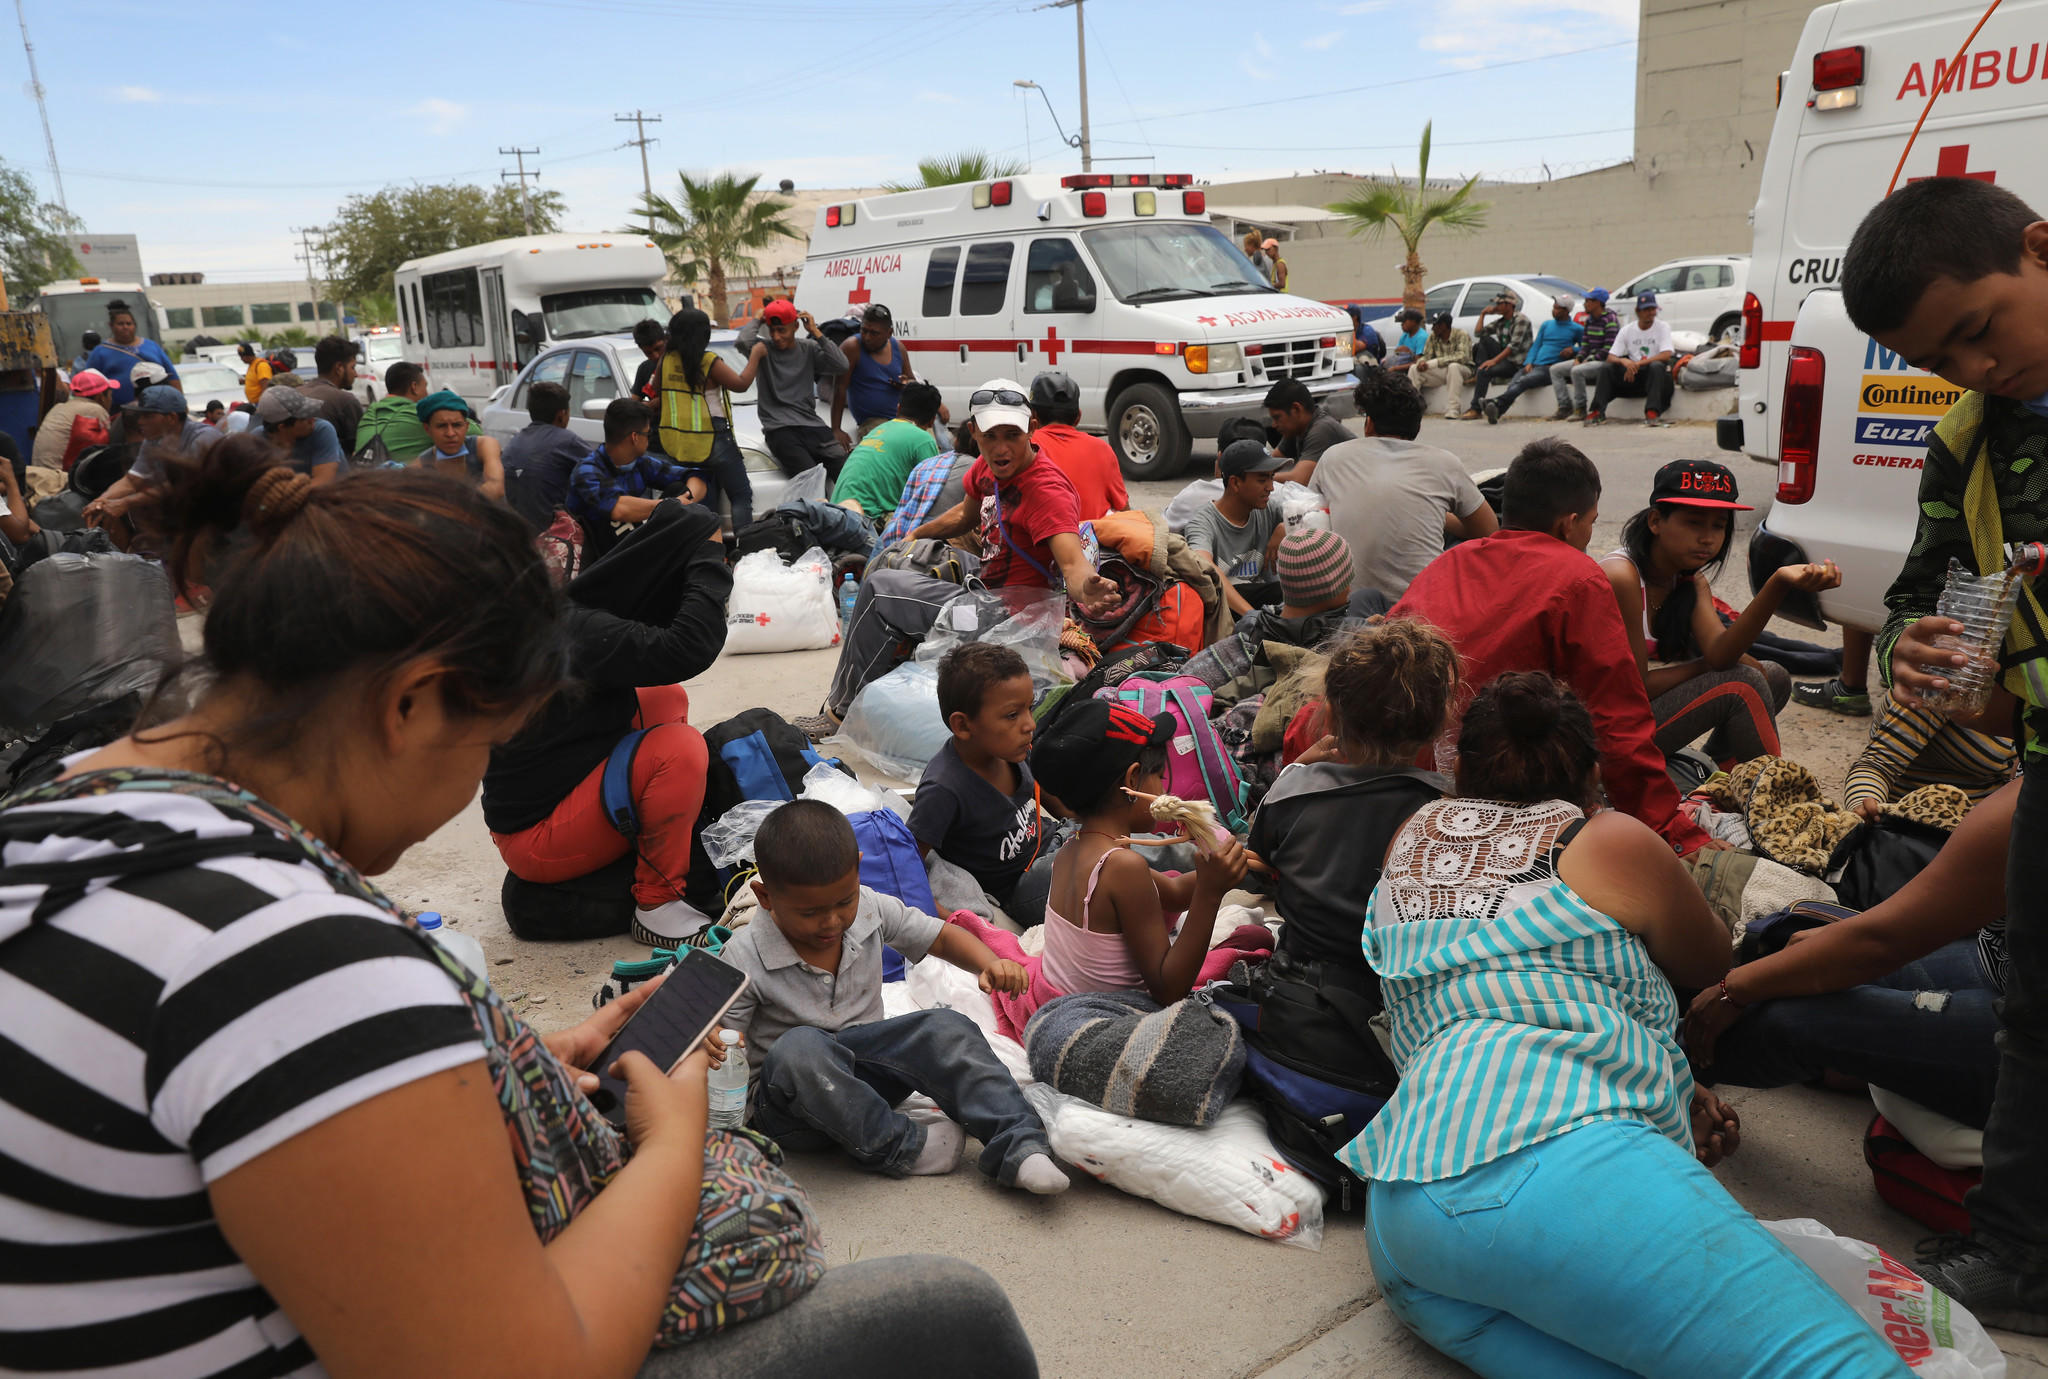 'CARAVAN' CROSSING? Migrant Group ARRIVES at US Border